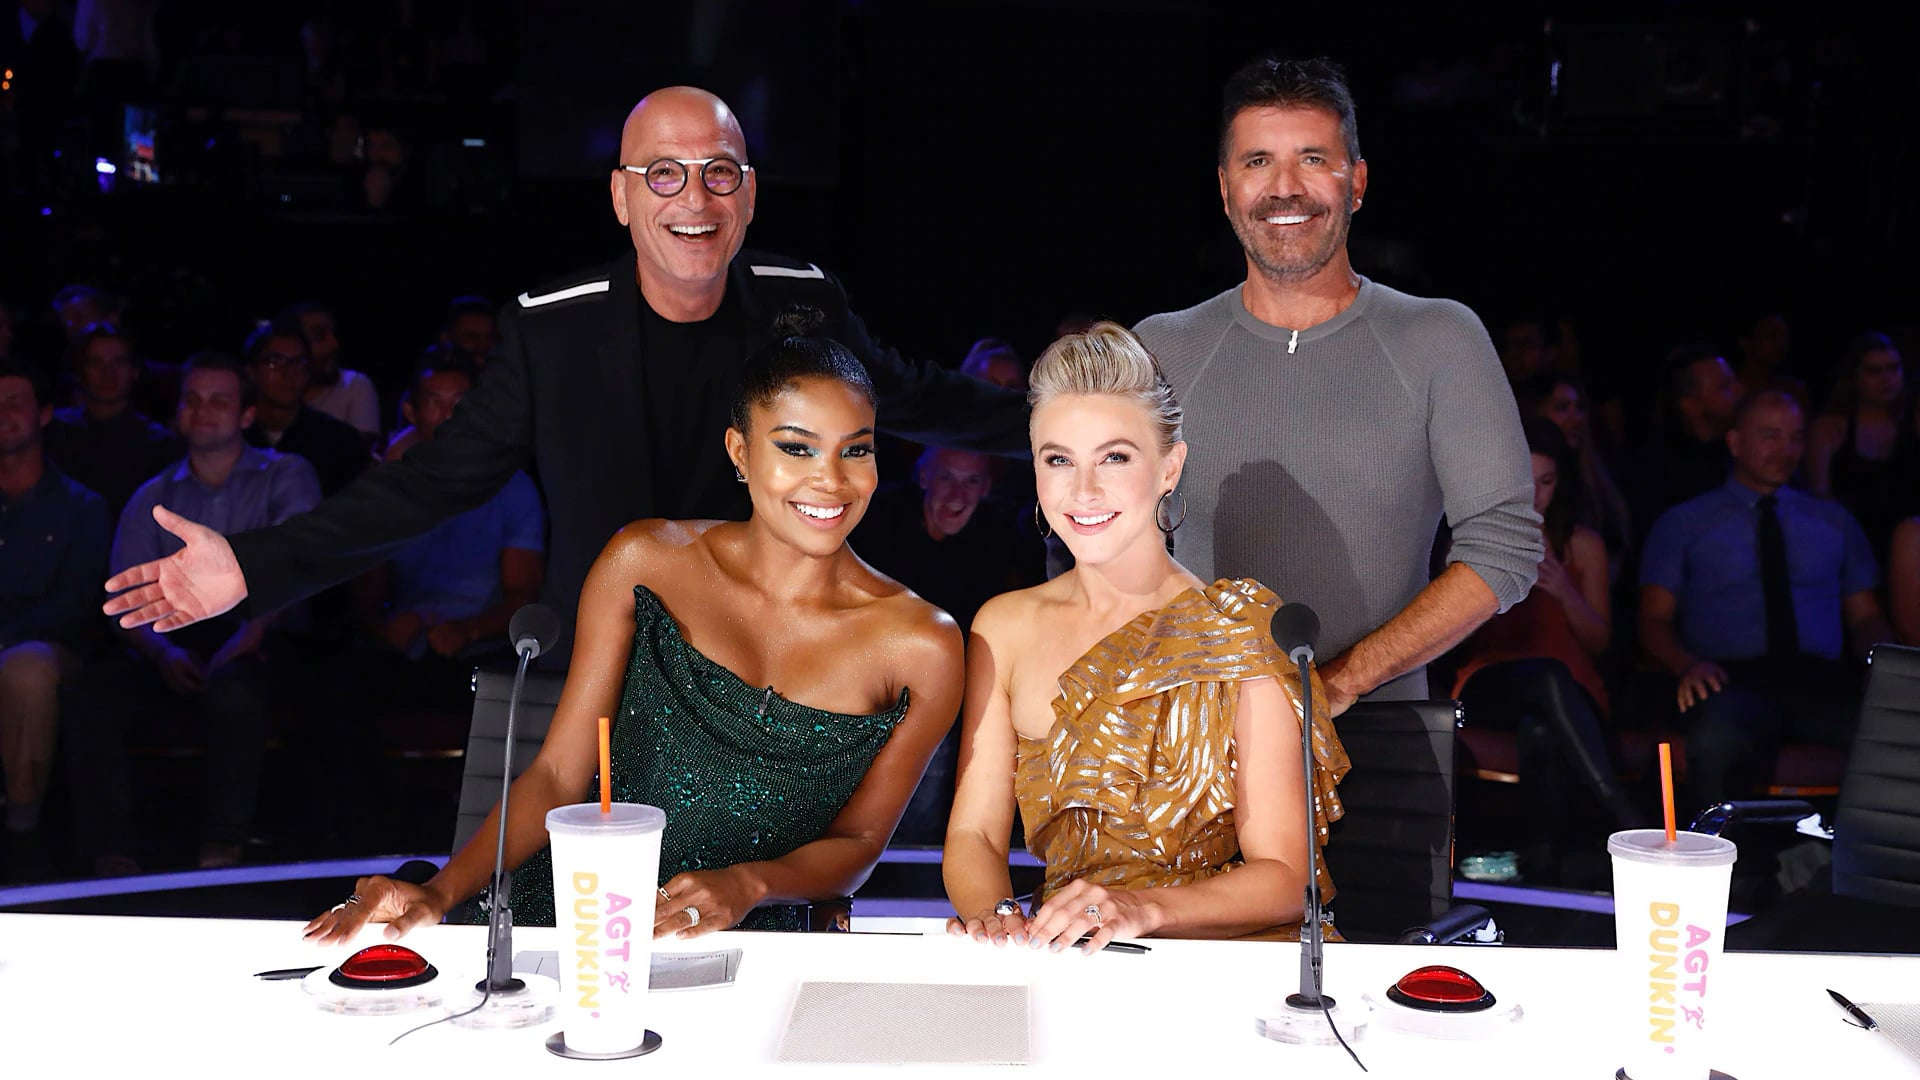 America's Got Talent - Season 14 Episode 12 : Quarter Finals 1